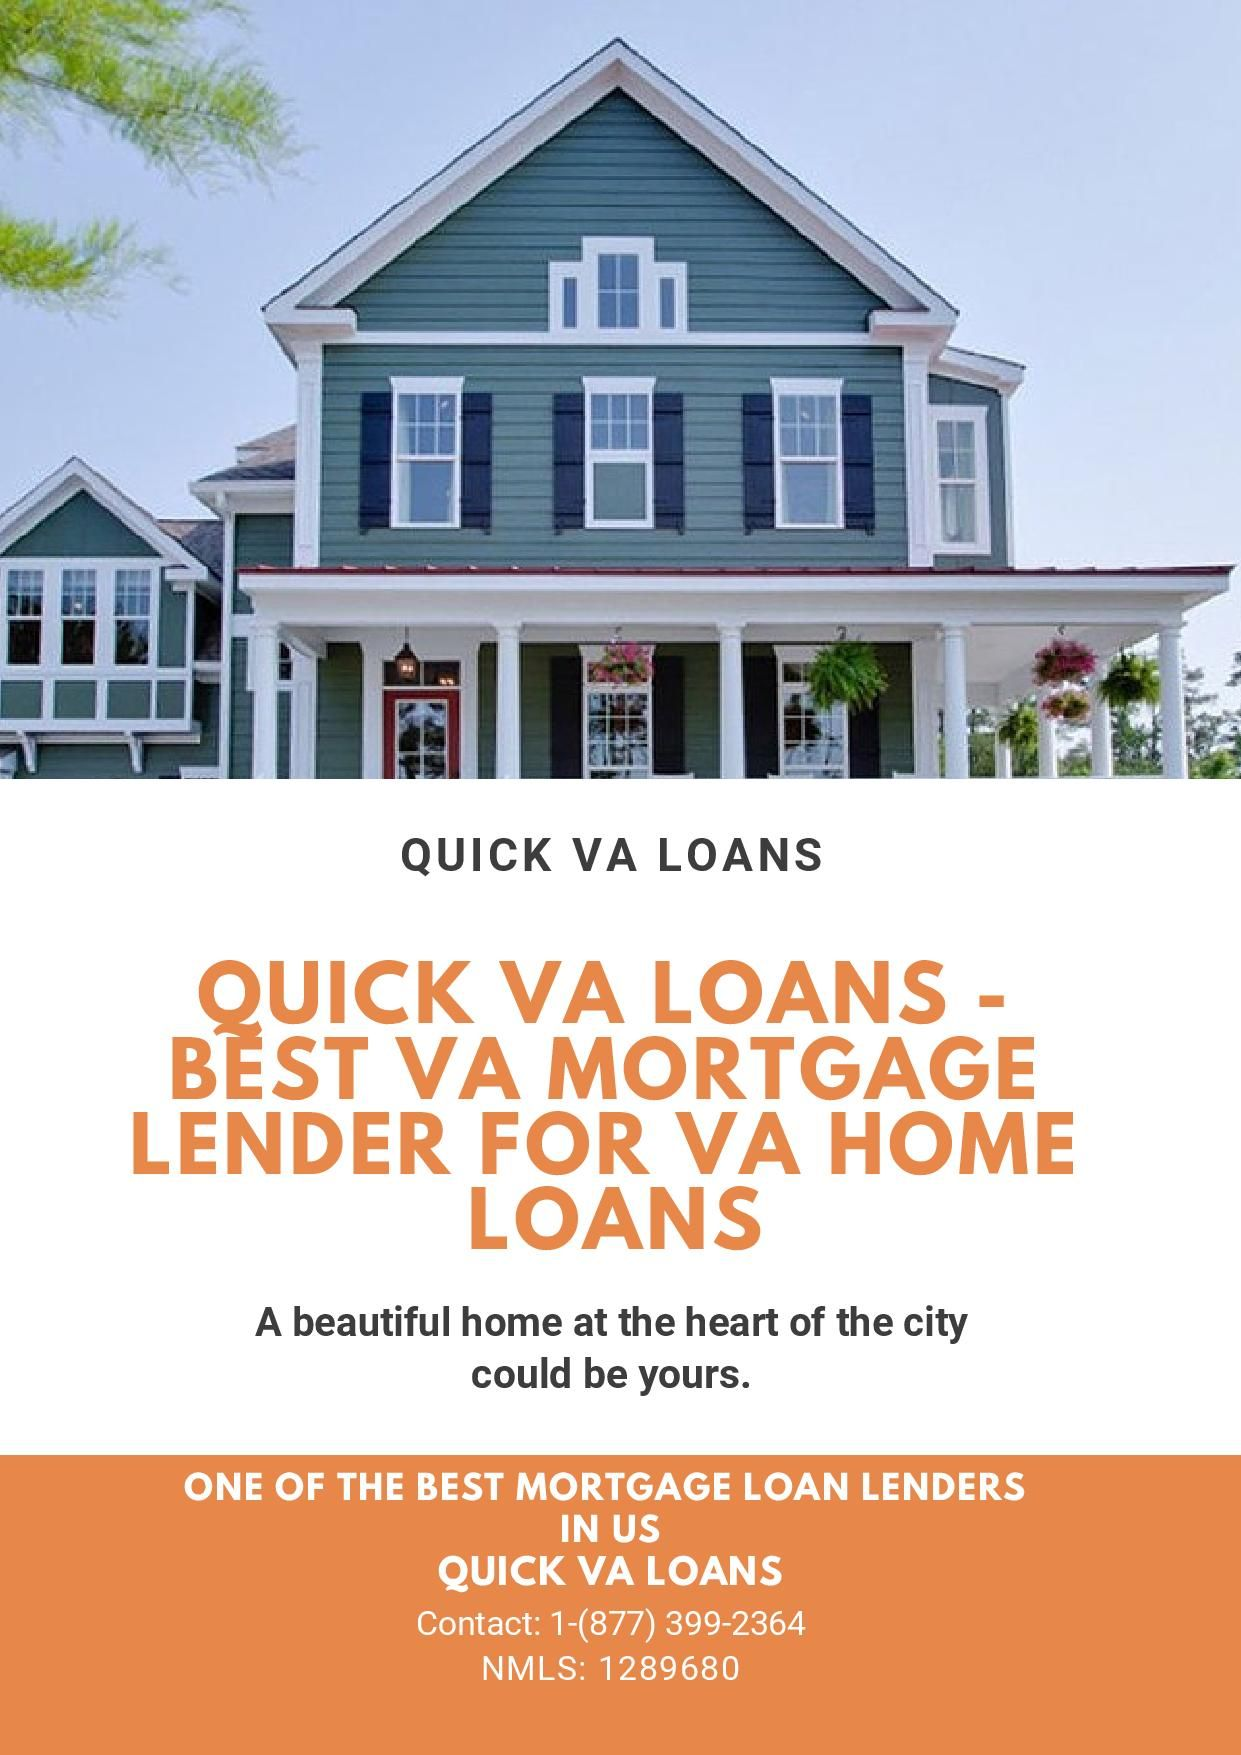 Quick Va Loans Is One Of The Best Mortgage Loan Lenders In Idaho